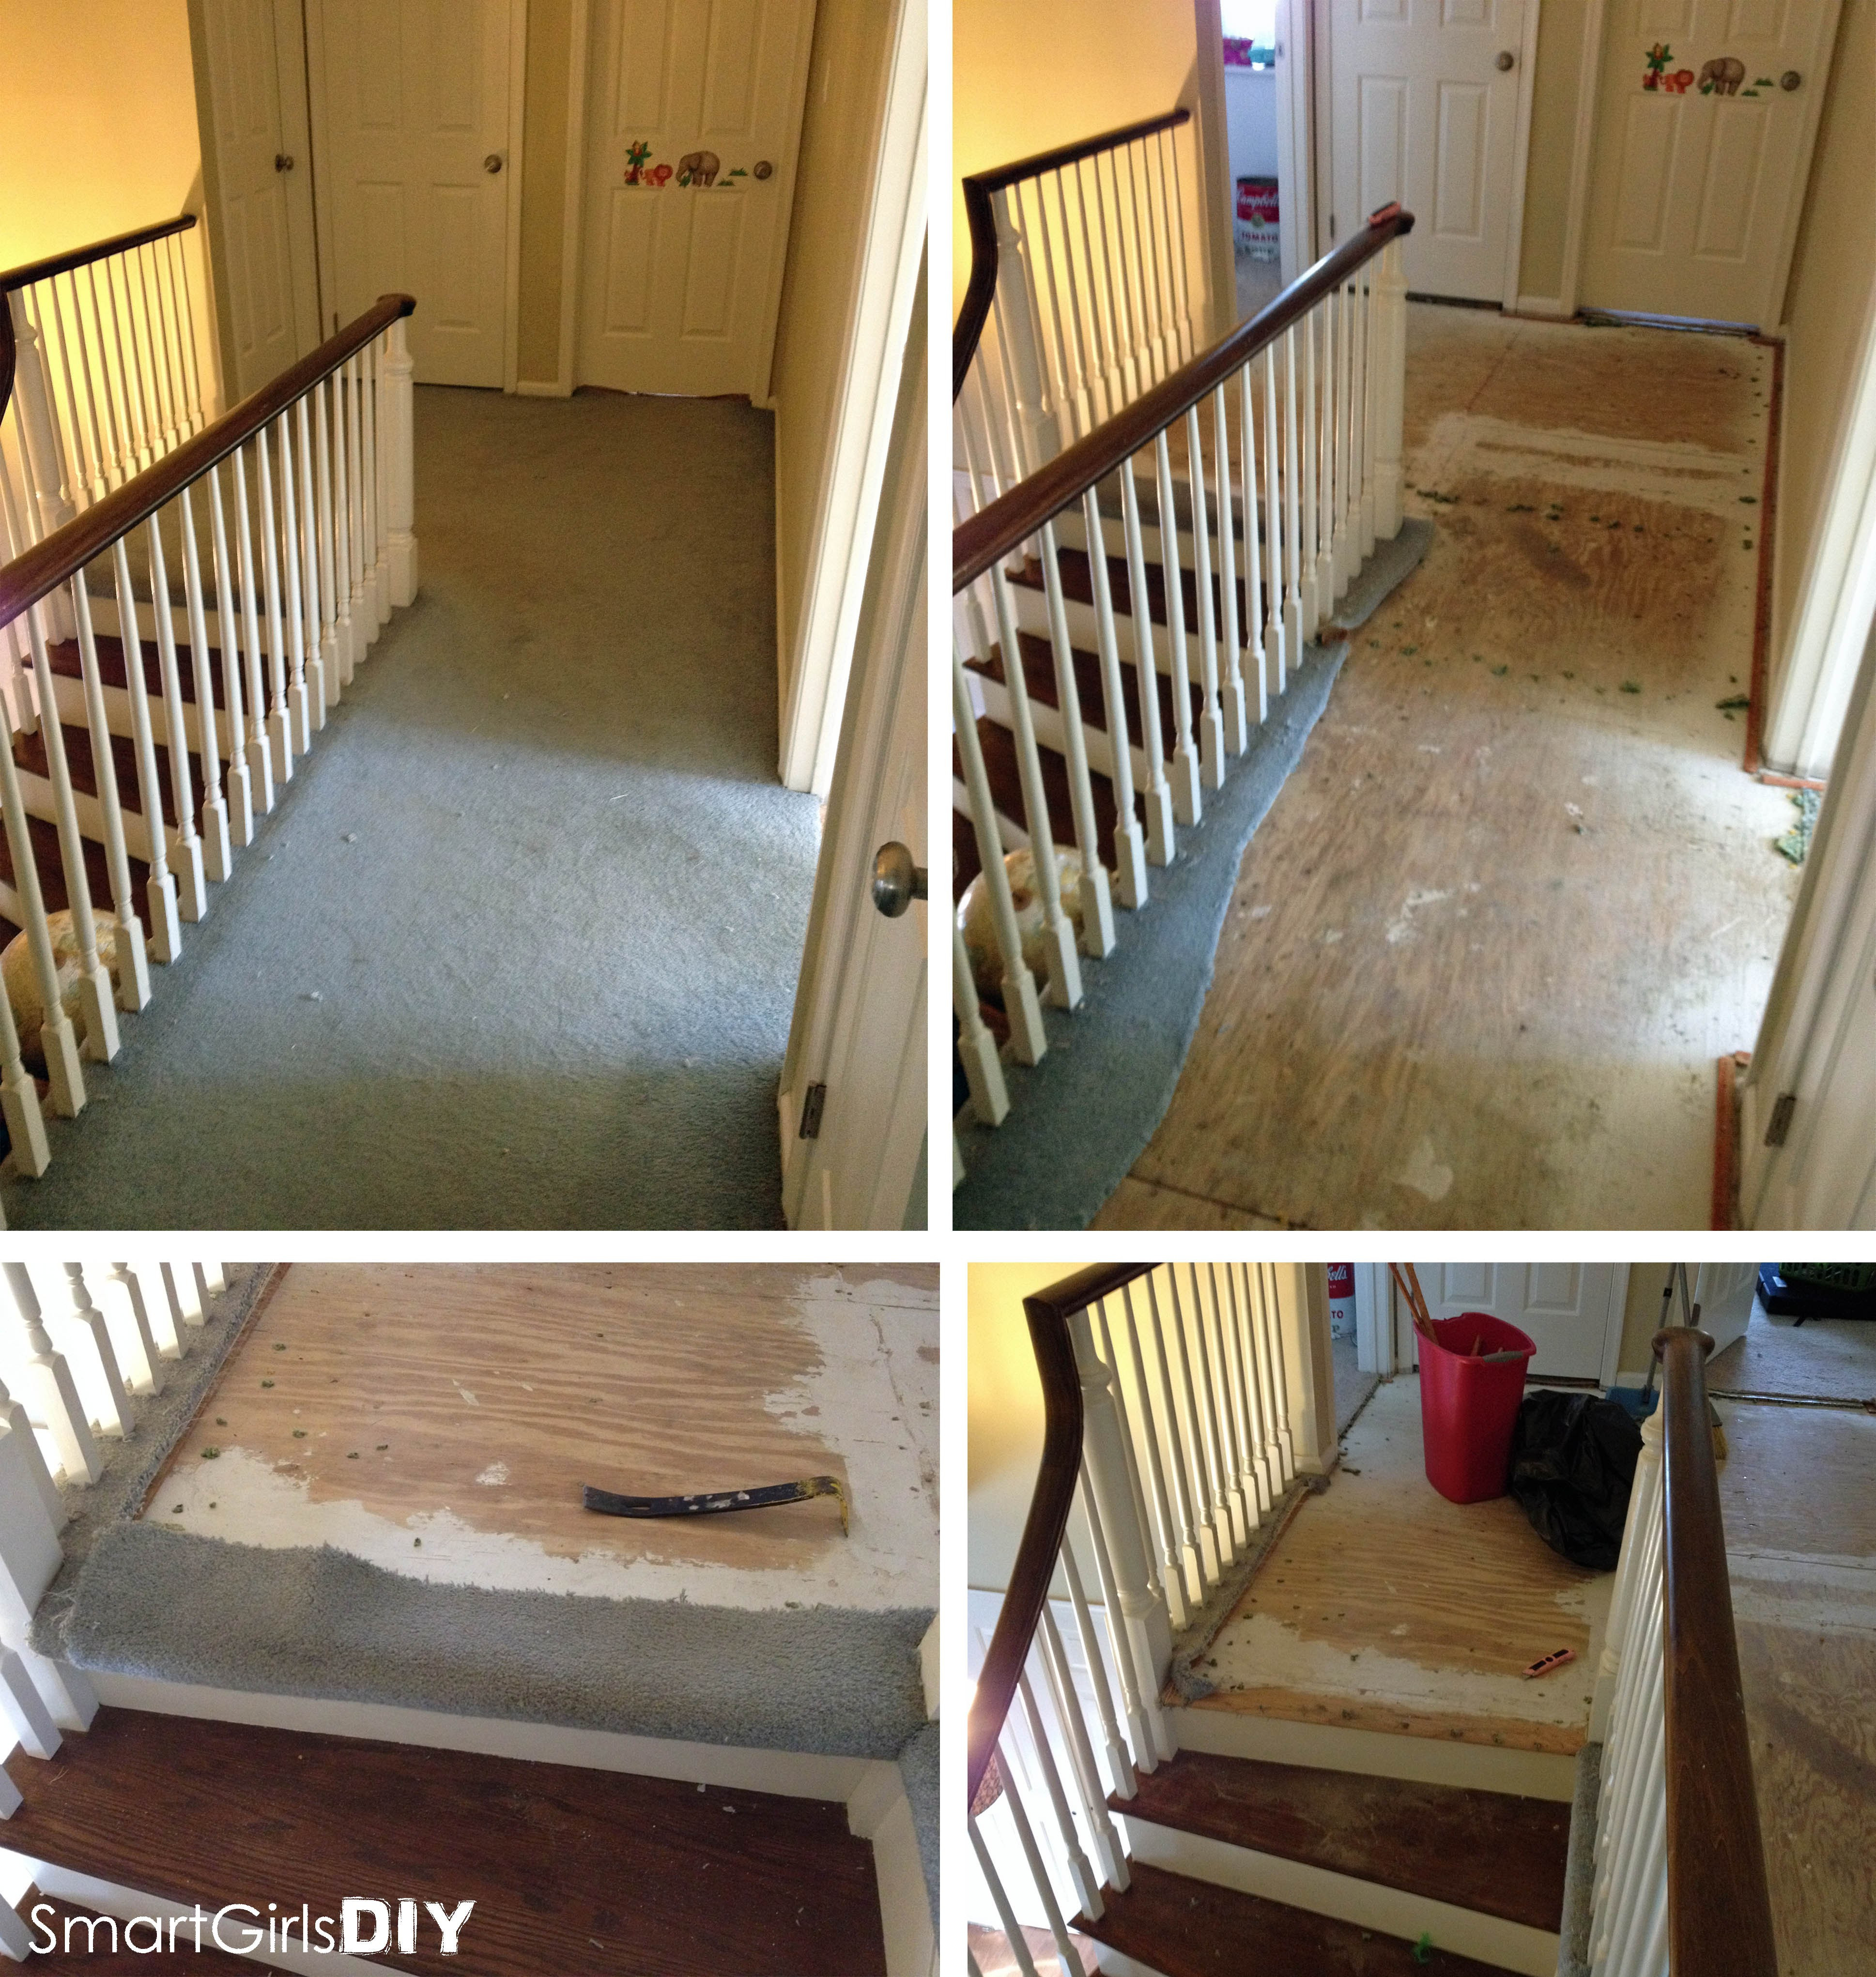 how much does it cost to install hardwood floors of upstairs hallway 1 installing hardwood floors for removing carpet from hallway installing the hardwood floor